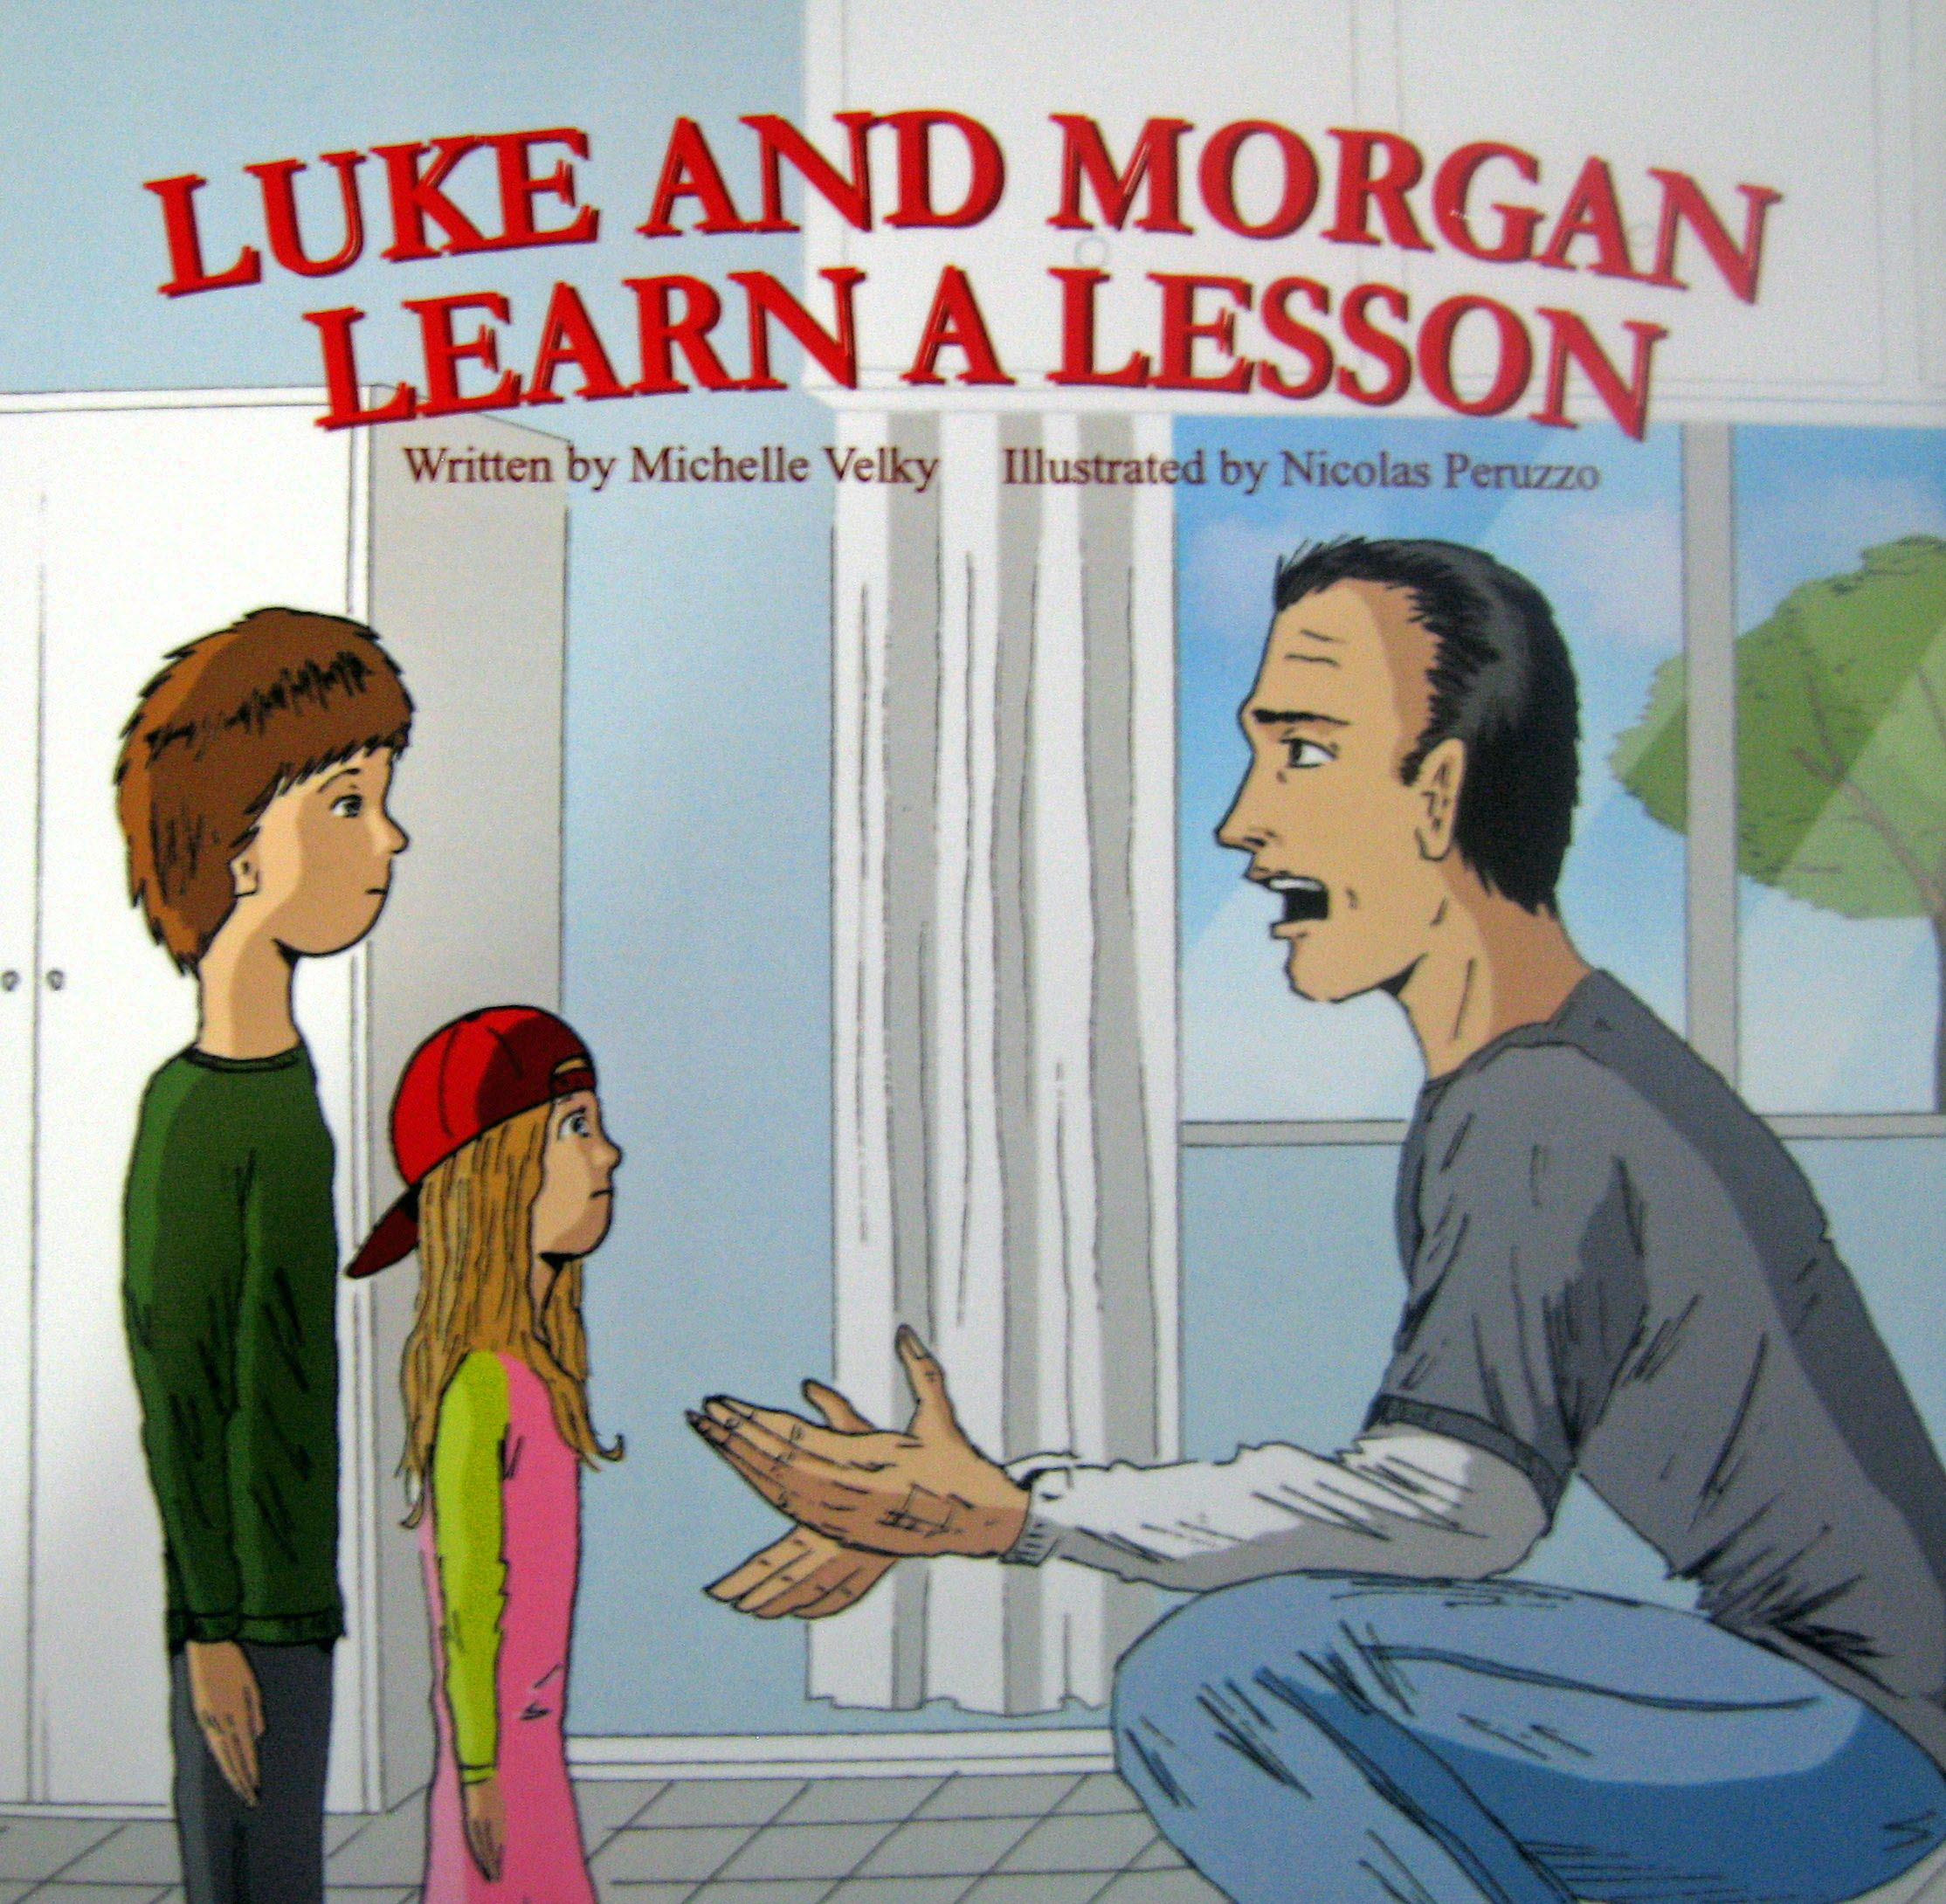 Luke and Morgan Learn A Lesson